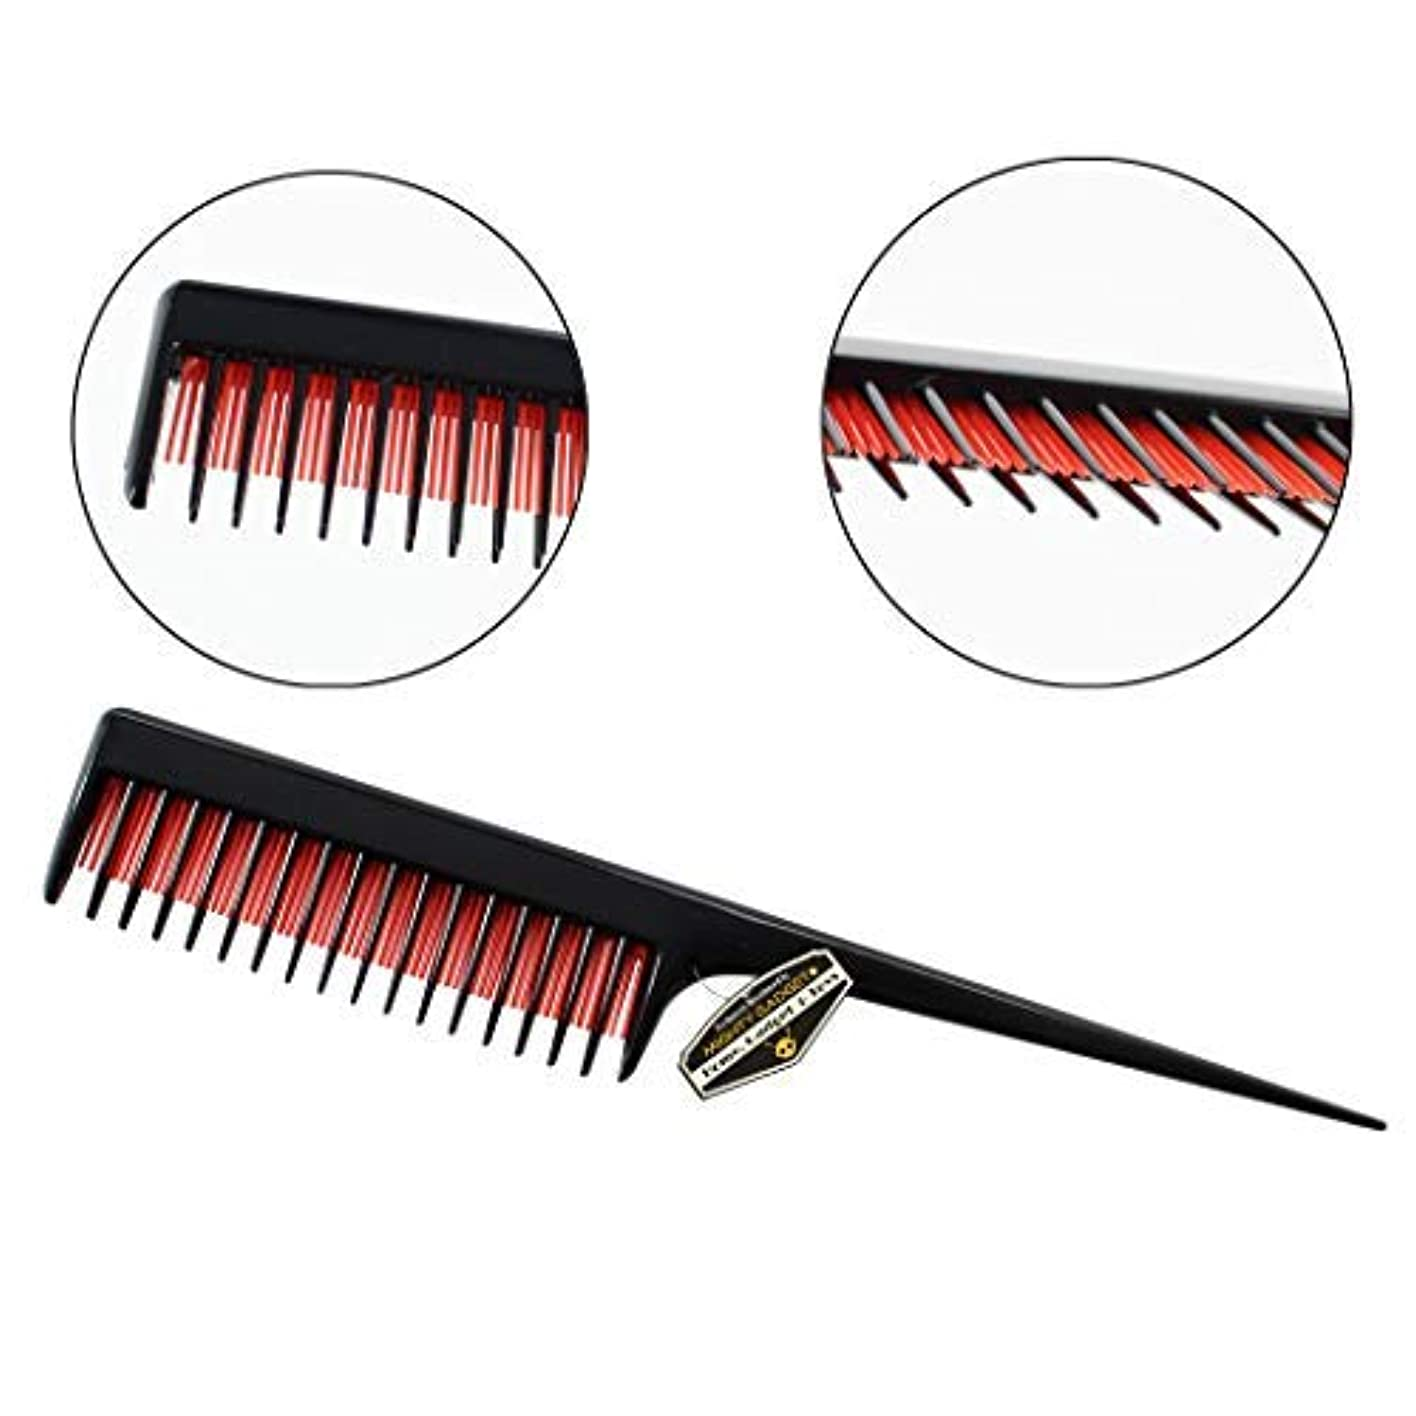 ホーム掃くあなたのもの3 Pack of Mighty Gadget 8 inch Teasing Comb - Rat Tail Comb for Back Combing, Root Teasing, Adding Volume, Evening Styling for Thin, Fine and Normal Hair Types [並行輸入品]